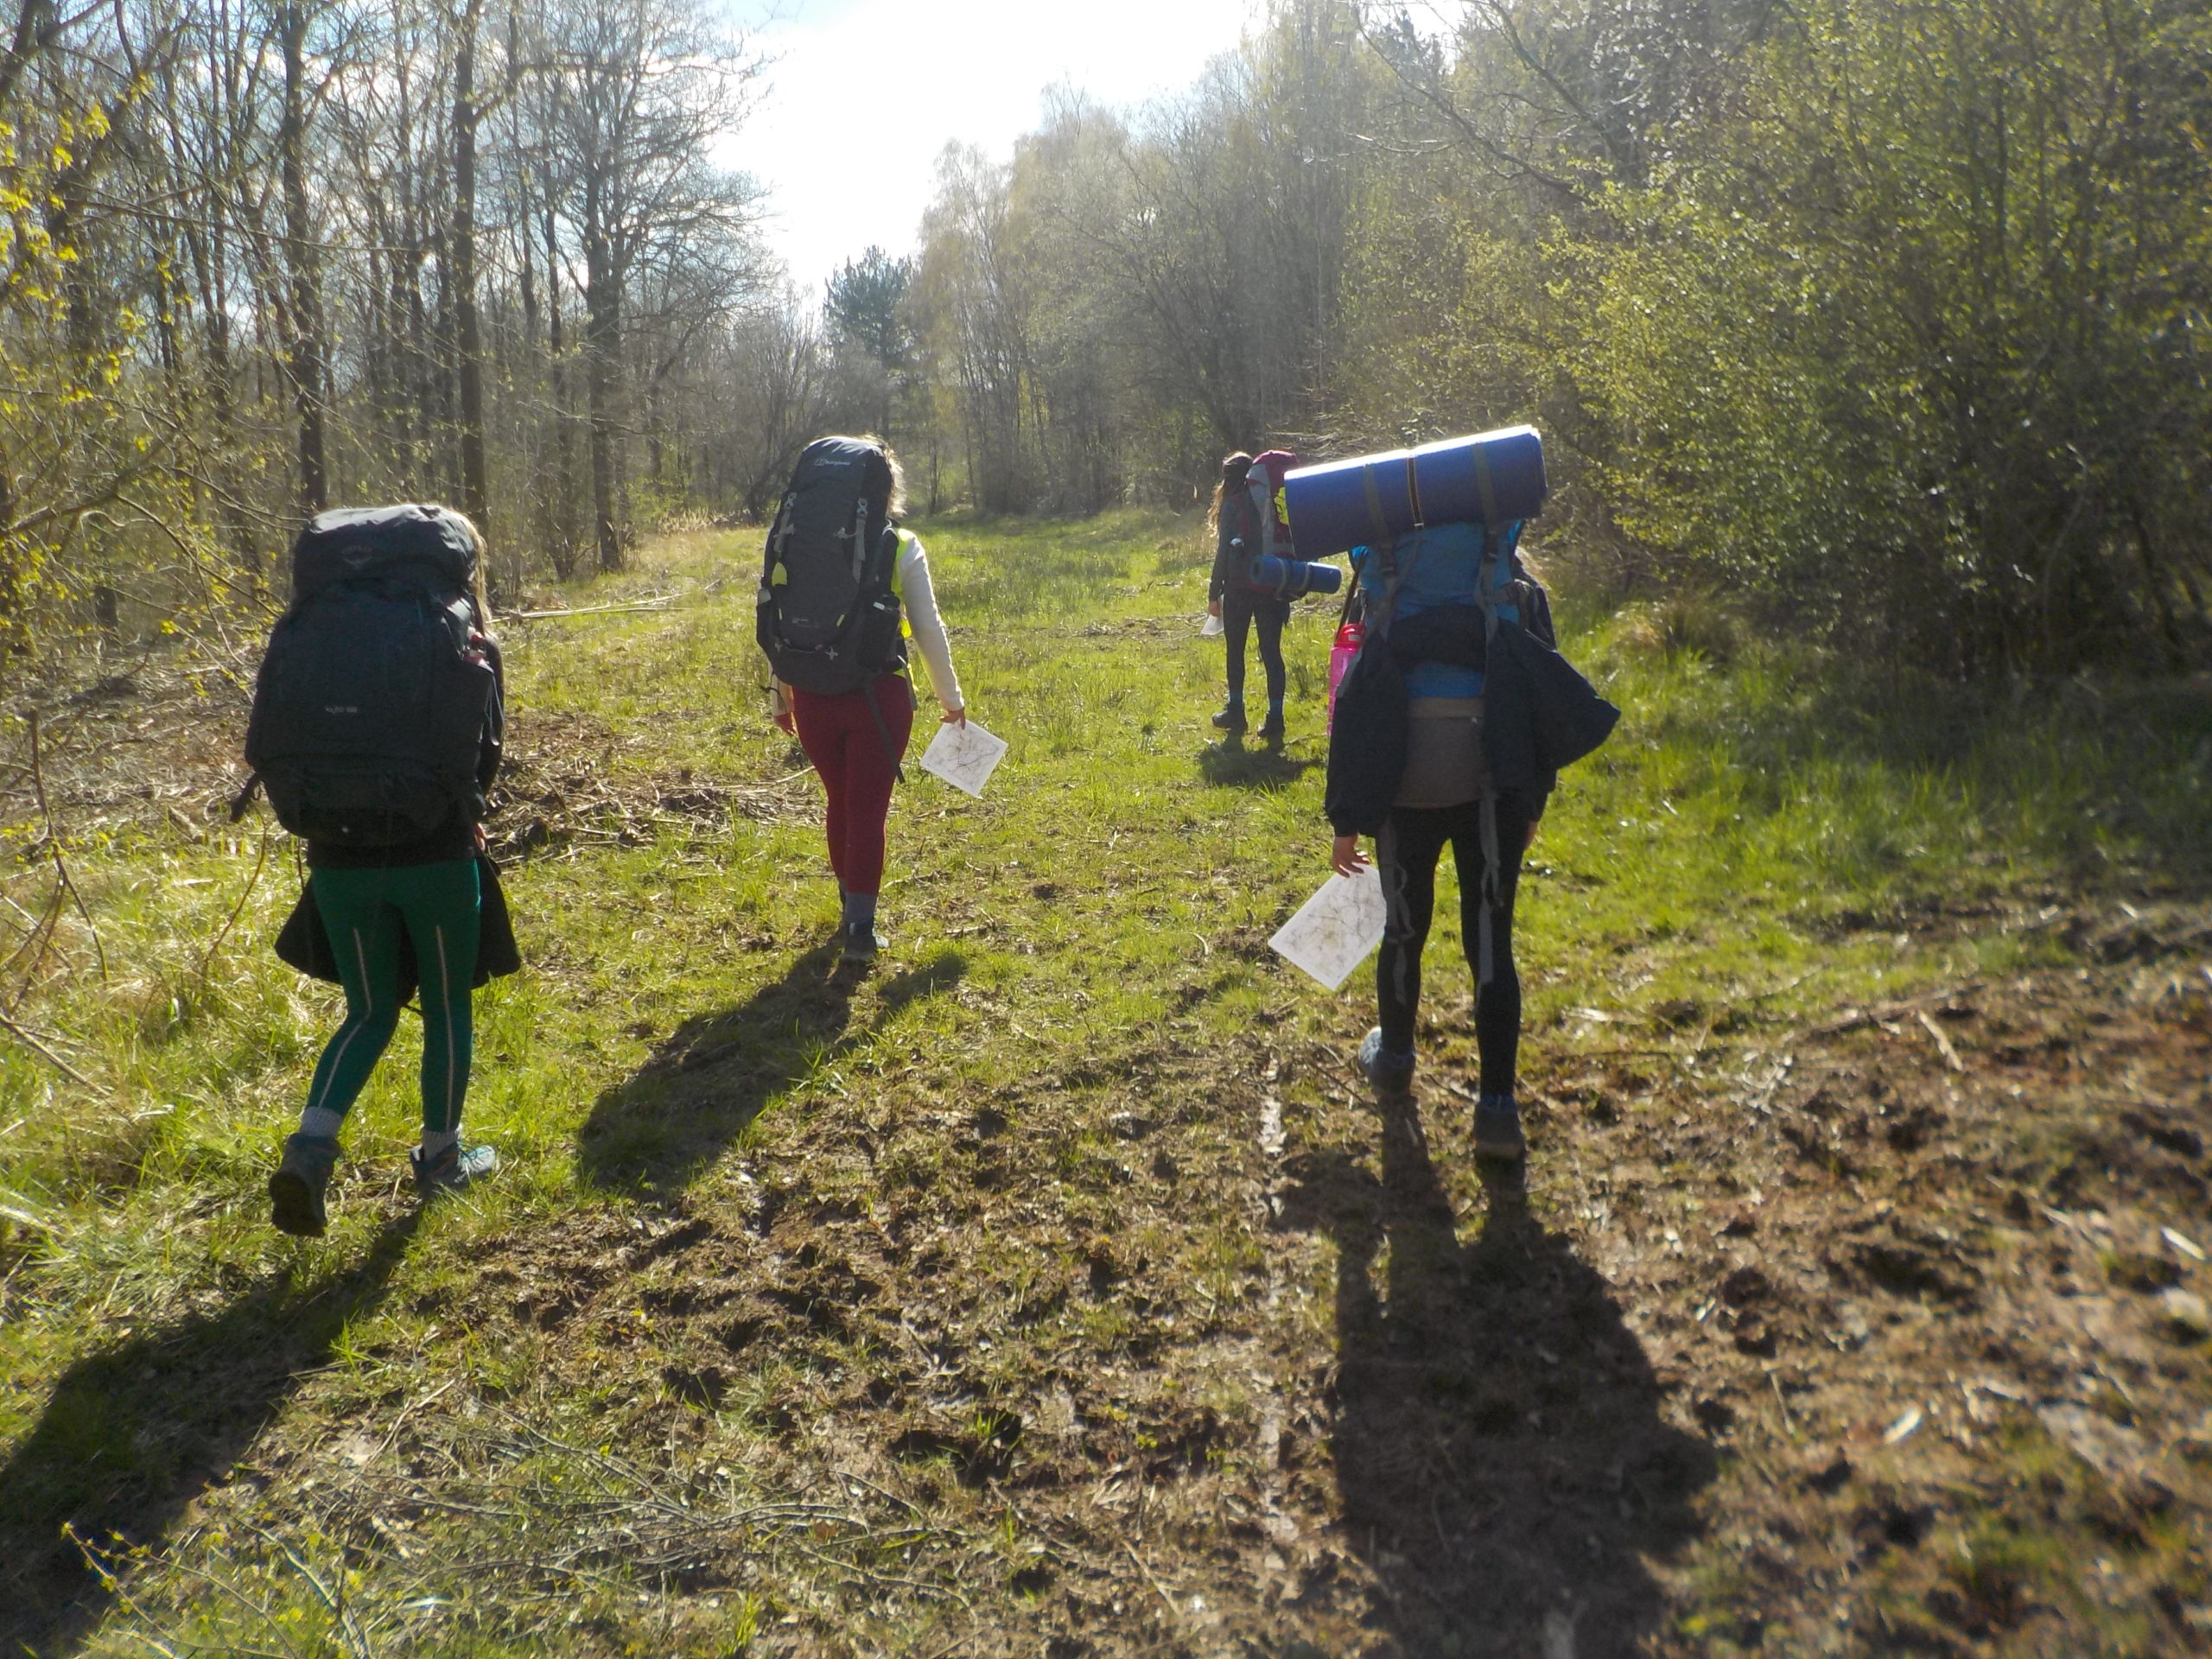 DofE continues overEaster